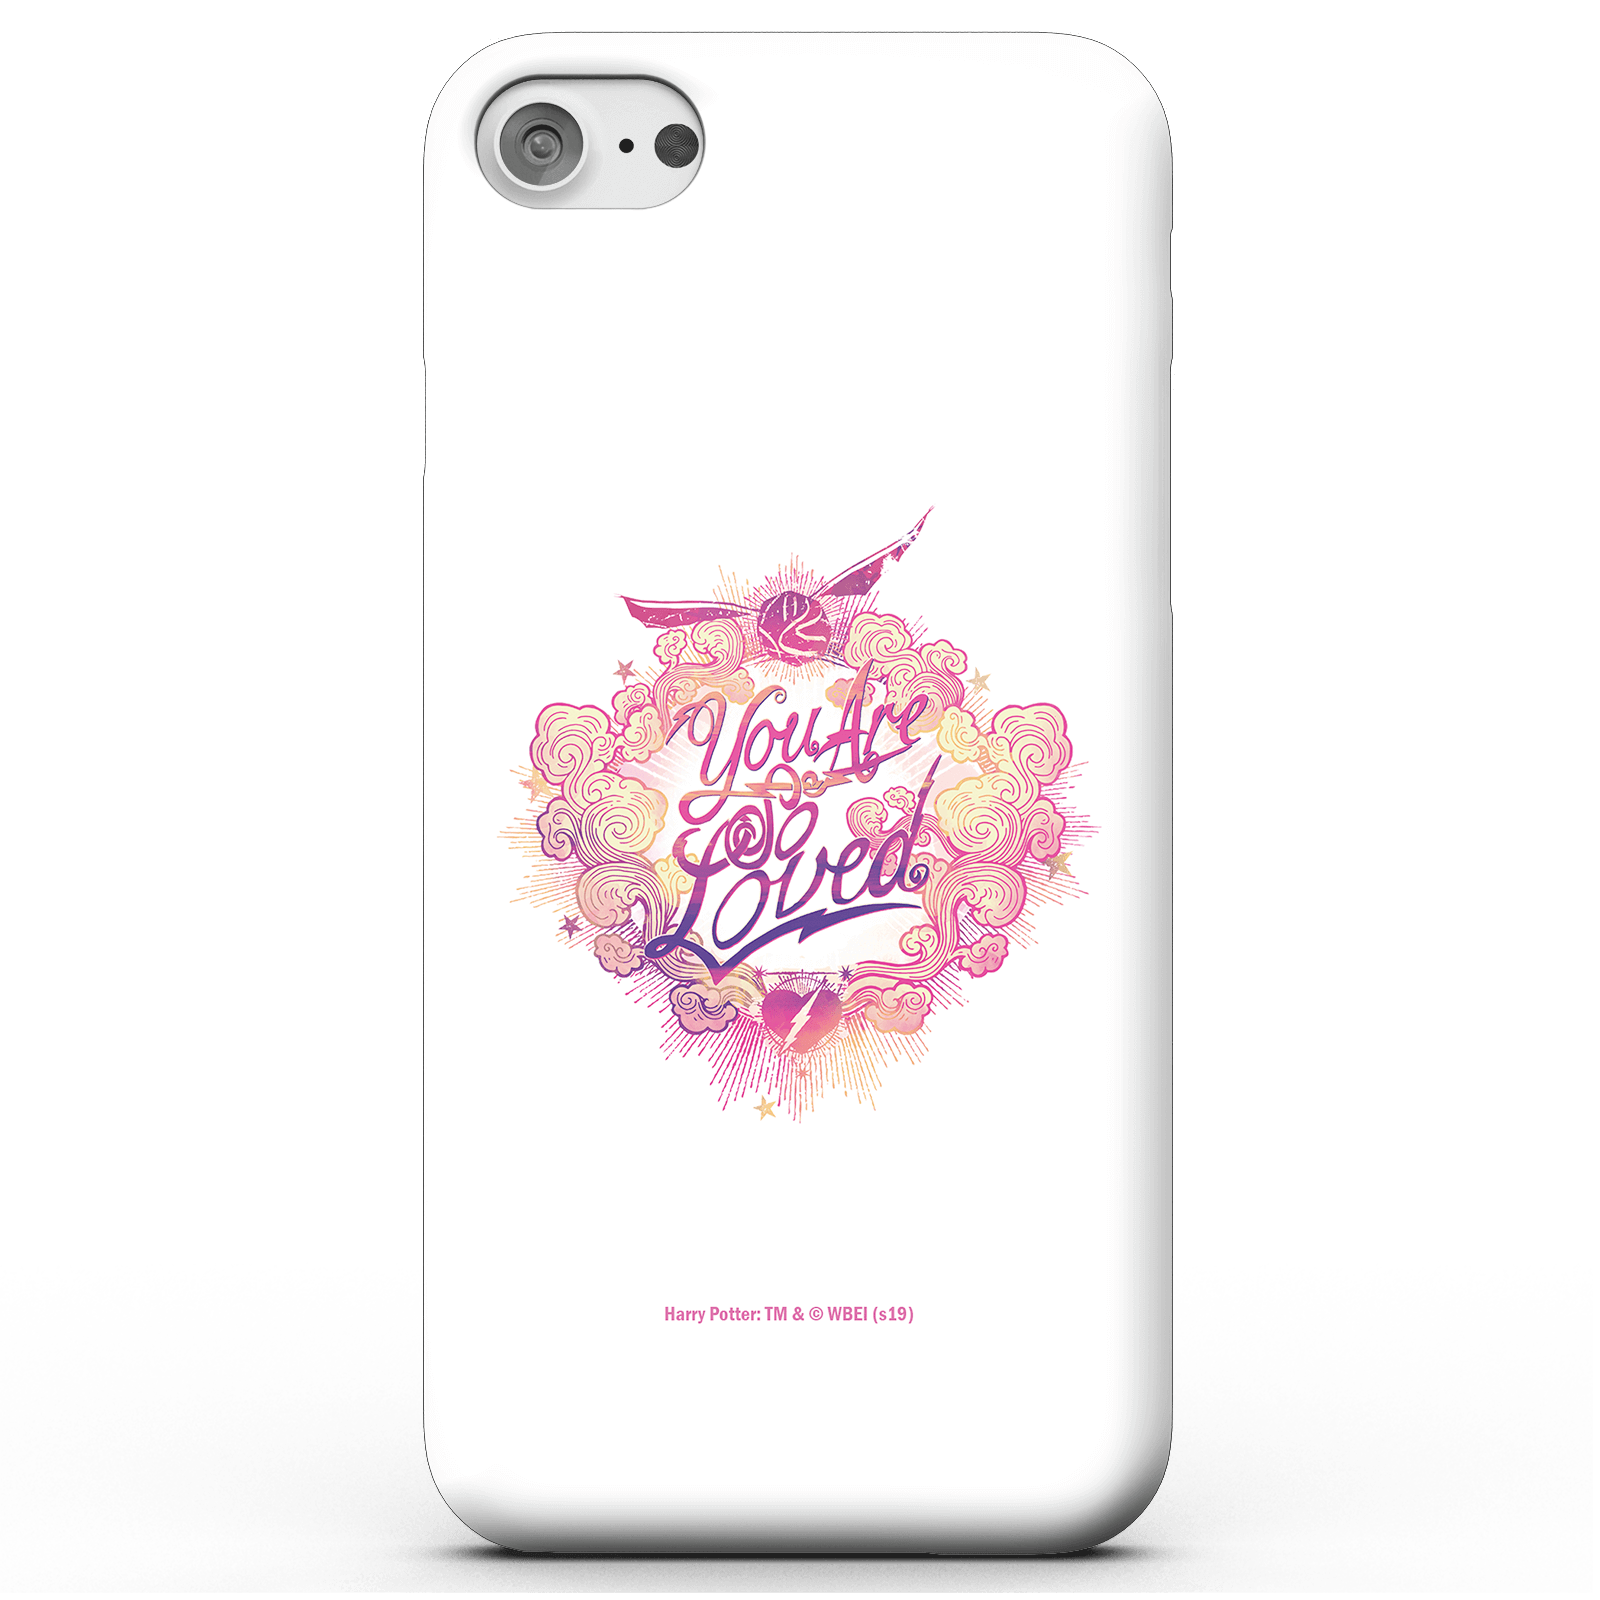 Harry Potter You Are So Loved Phone Case for iPhone and Android - iPhone 5/5s - Snap Case - Matte